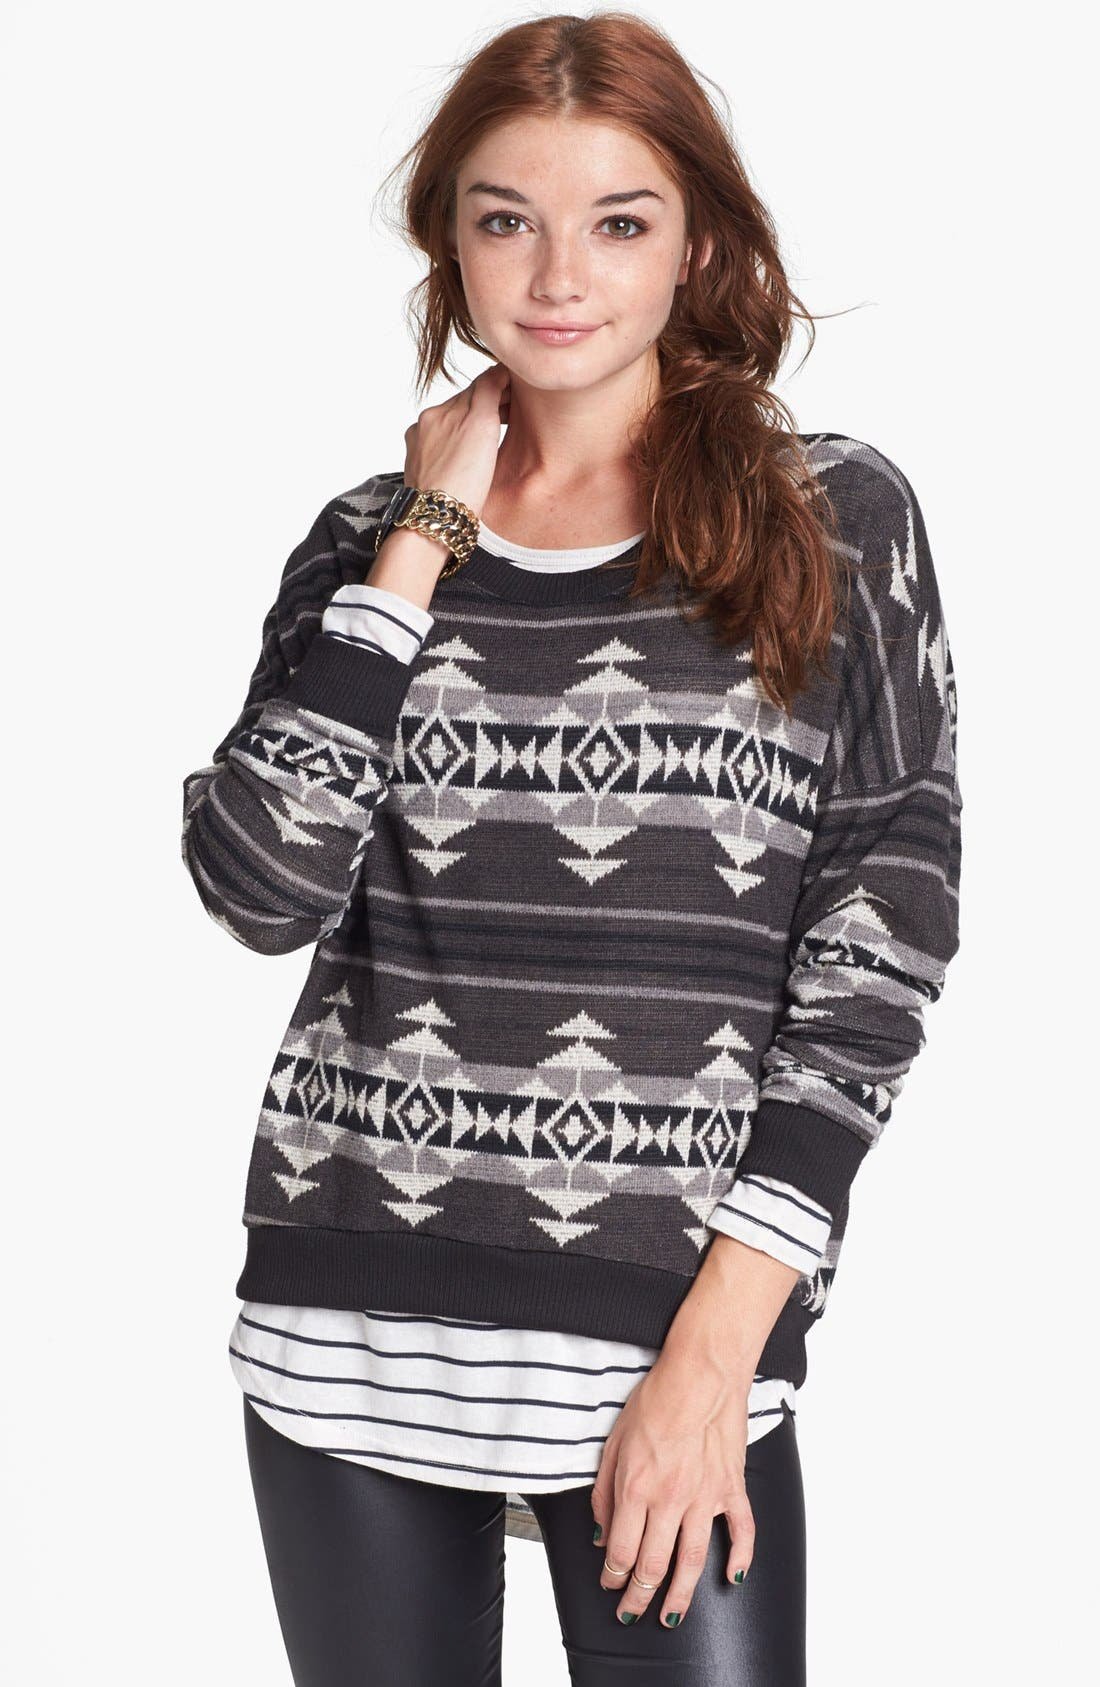 Alternate Image 1 Selected - Painted Threads Geometric Pattern Sweatshirt (Juniors)